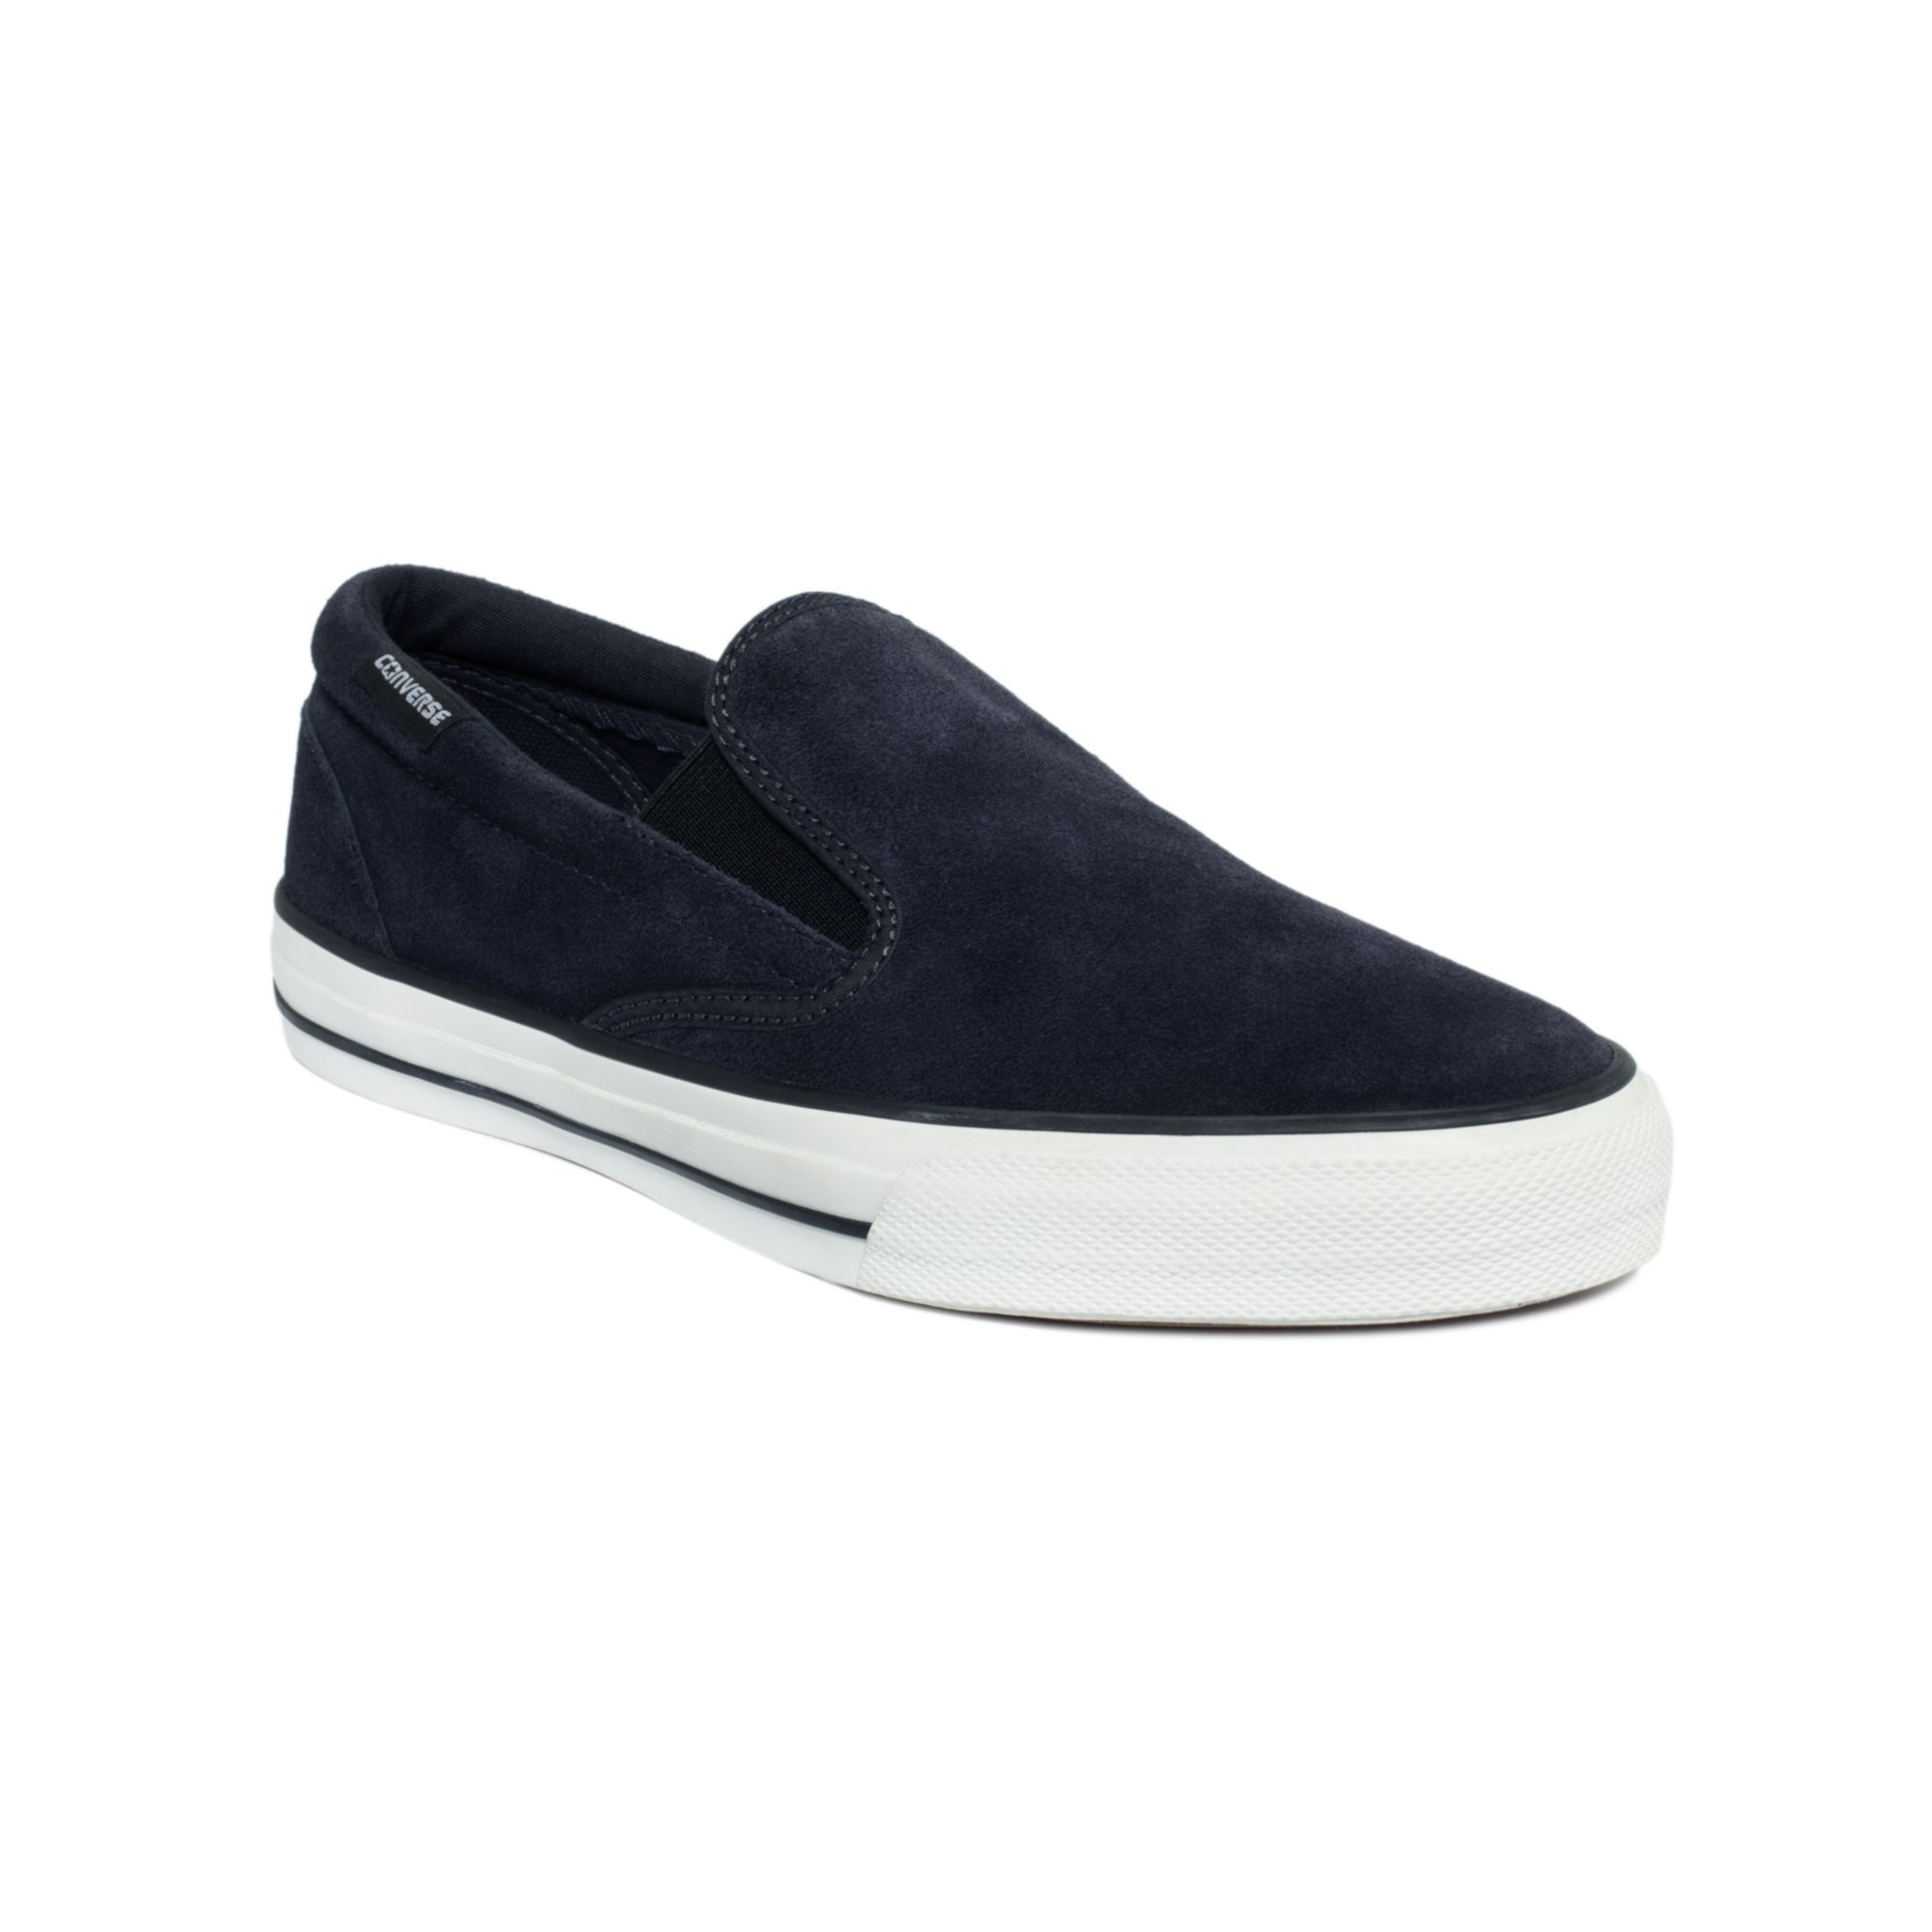 Cool Looking Slip On Shoes